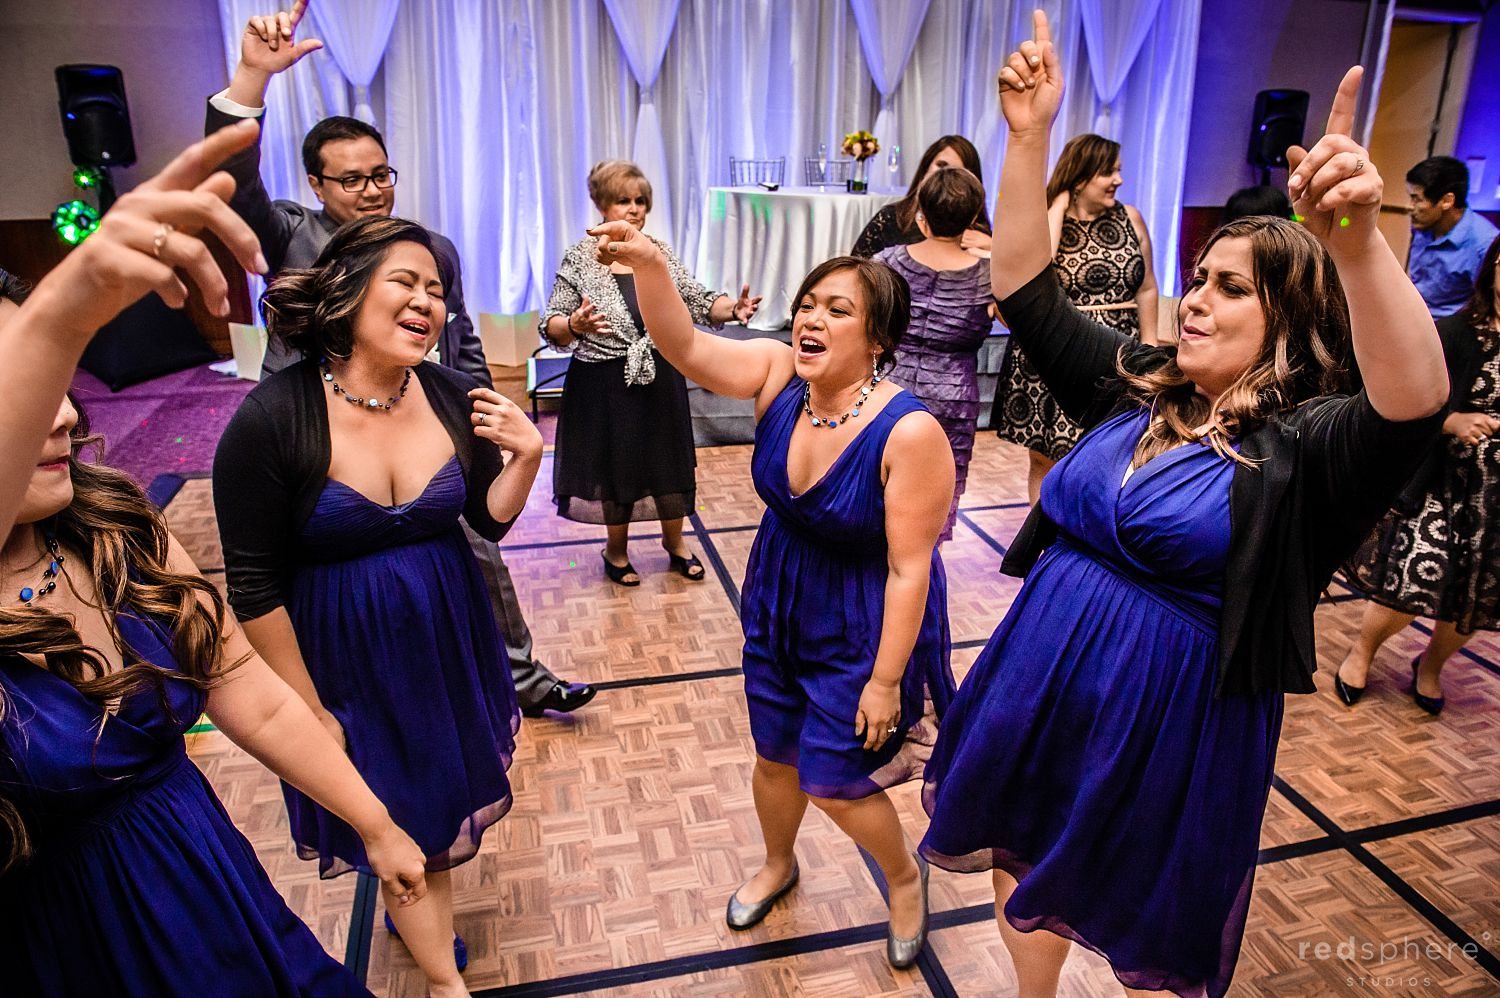 Bridesmaids' Dancing and Drinking During Wedding Reception at Intercontinental Hotel After Party